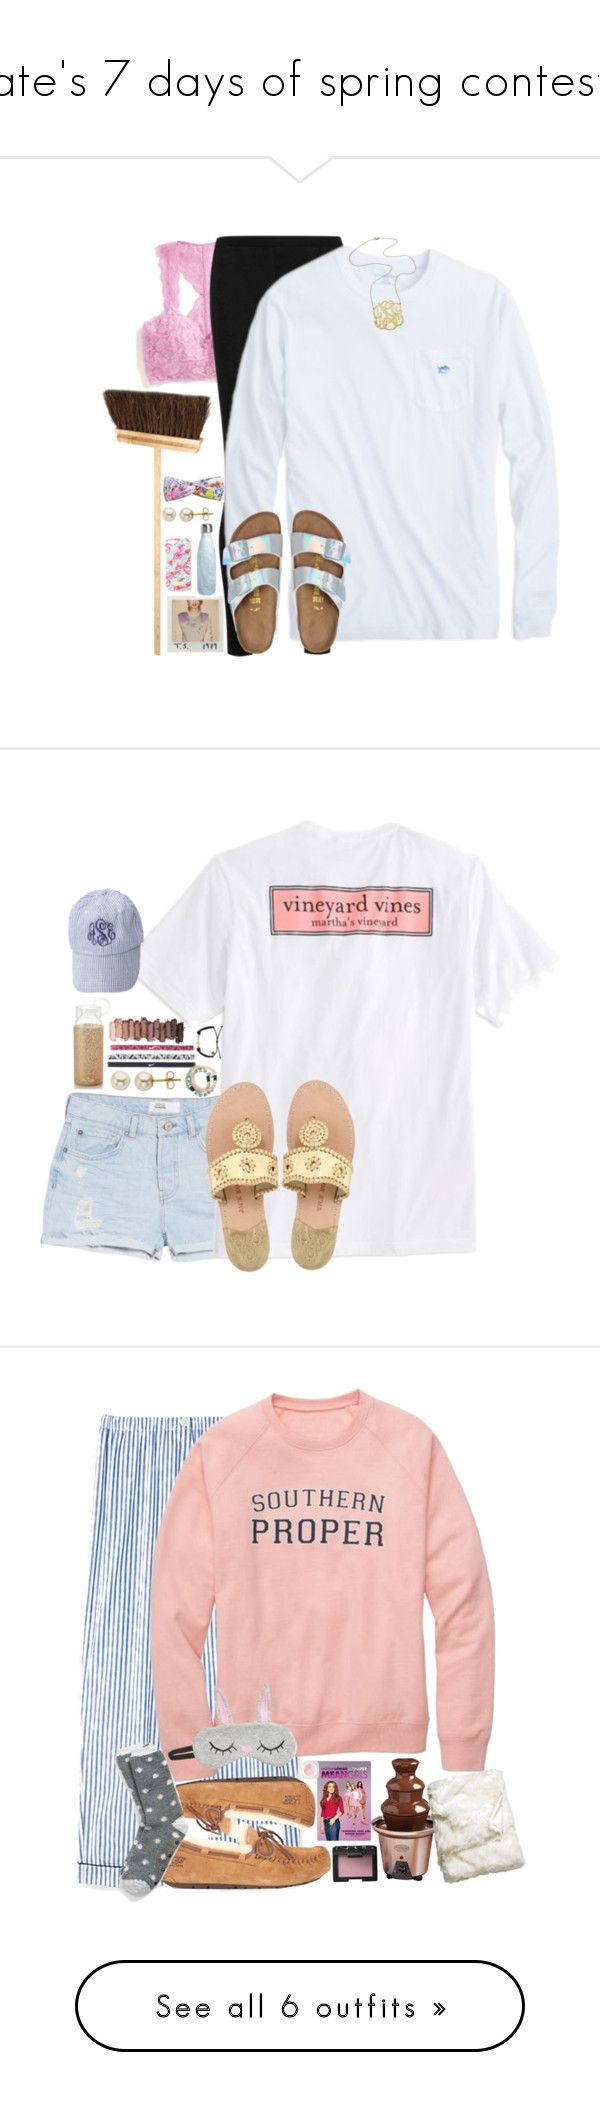 """""""kate's 7 days of spring contest!!"""" by sydneylawsonn ❤ liked on Polyvore featuring k7setsofspring, Free People, Donna Karan, Birkenstock, Jennifer Zeuner, Iris Hantverk, S'well, Lord & Taylor, Lilly Pulitzer and Kate Spade"""